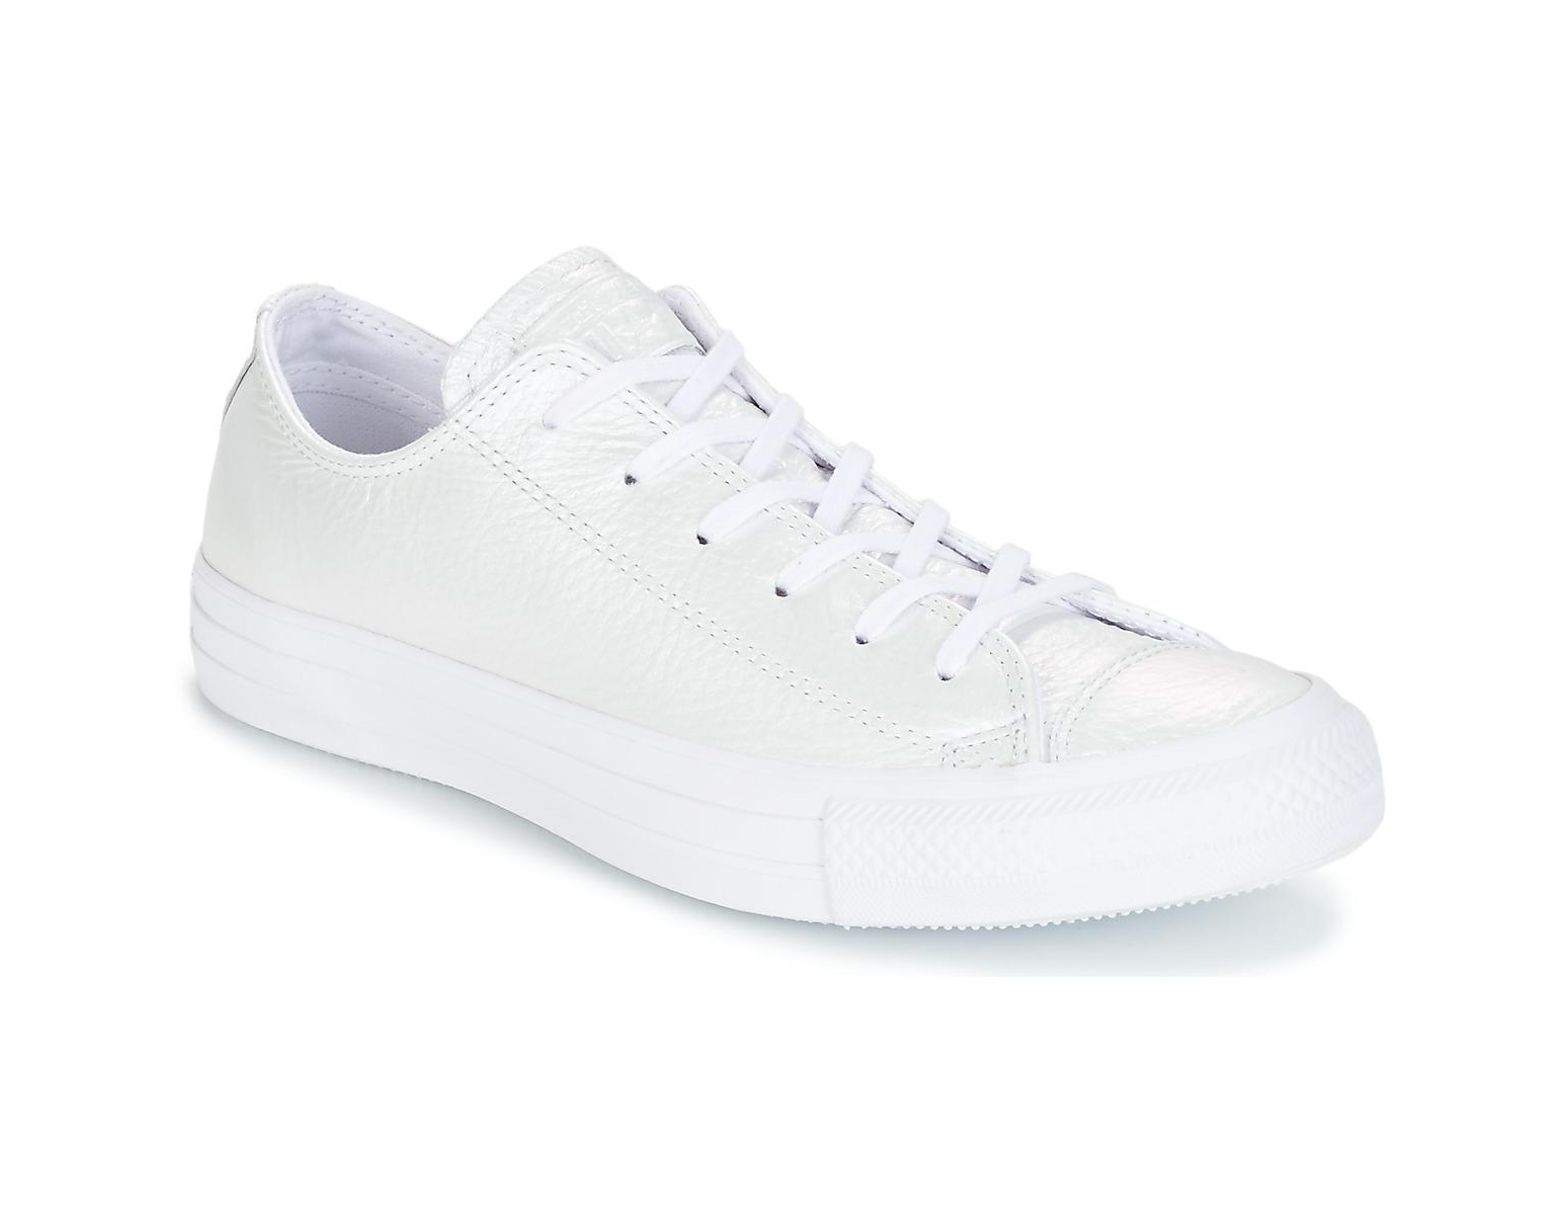 08d5b2deb2b Converse Chuck Taylor All Star Iridescent Leather Ox Iridescent Leather O  Shoes (trainers) in White - Save 29% - Lyst